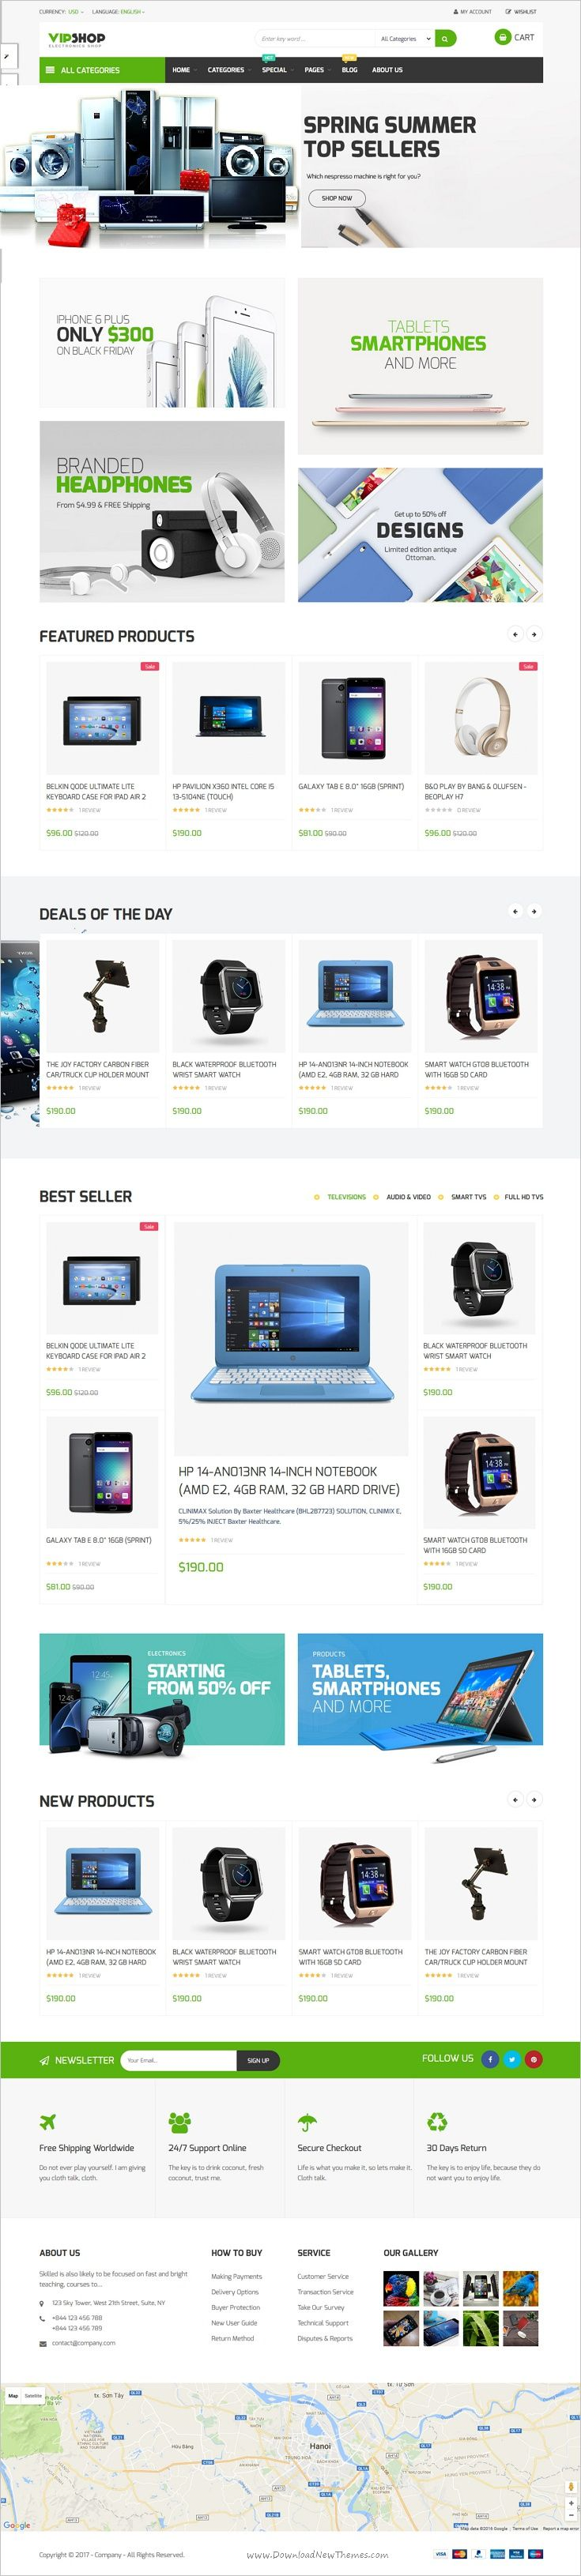 Pts Vipshop is a beautiful & creative design @Prestashop theme for creative #electronics #store eCommerce #website with 4 unique homepage layouts download now➩ https://themeforest.net/item/pts-vipshop/18528130?ref=Datasata